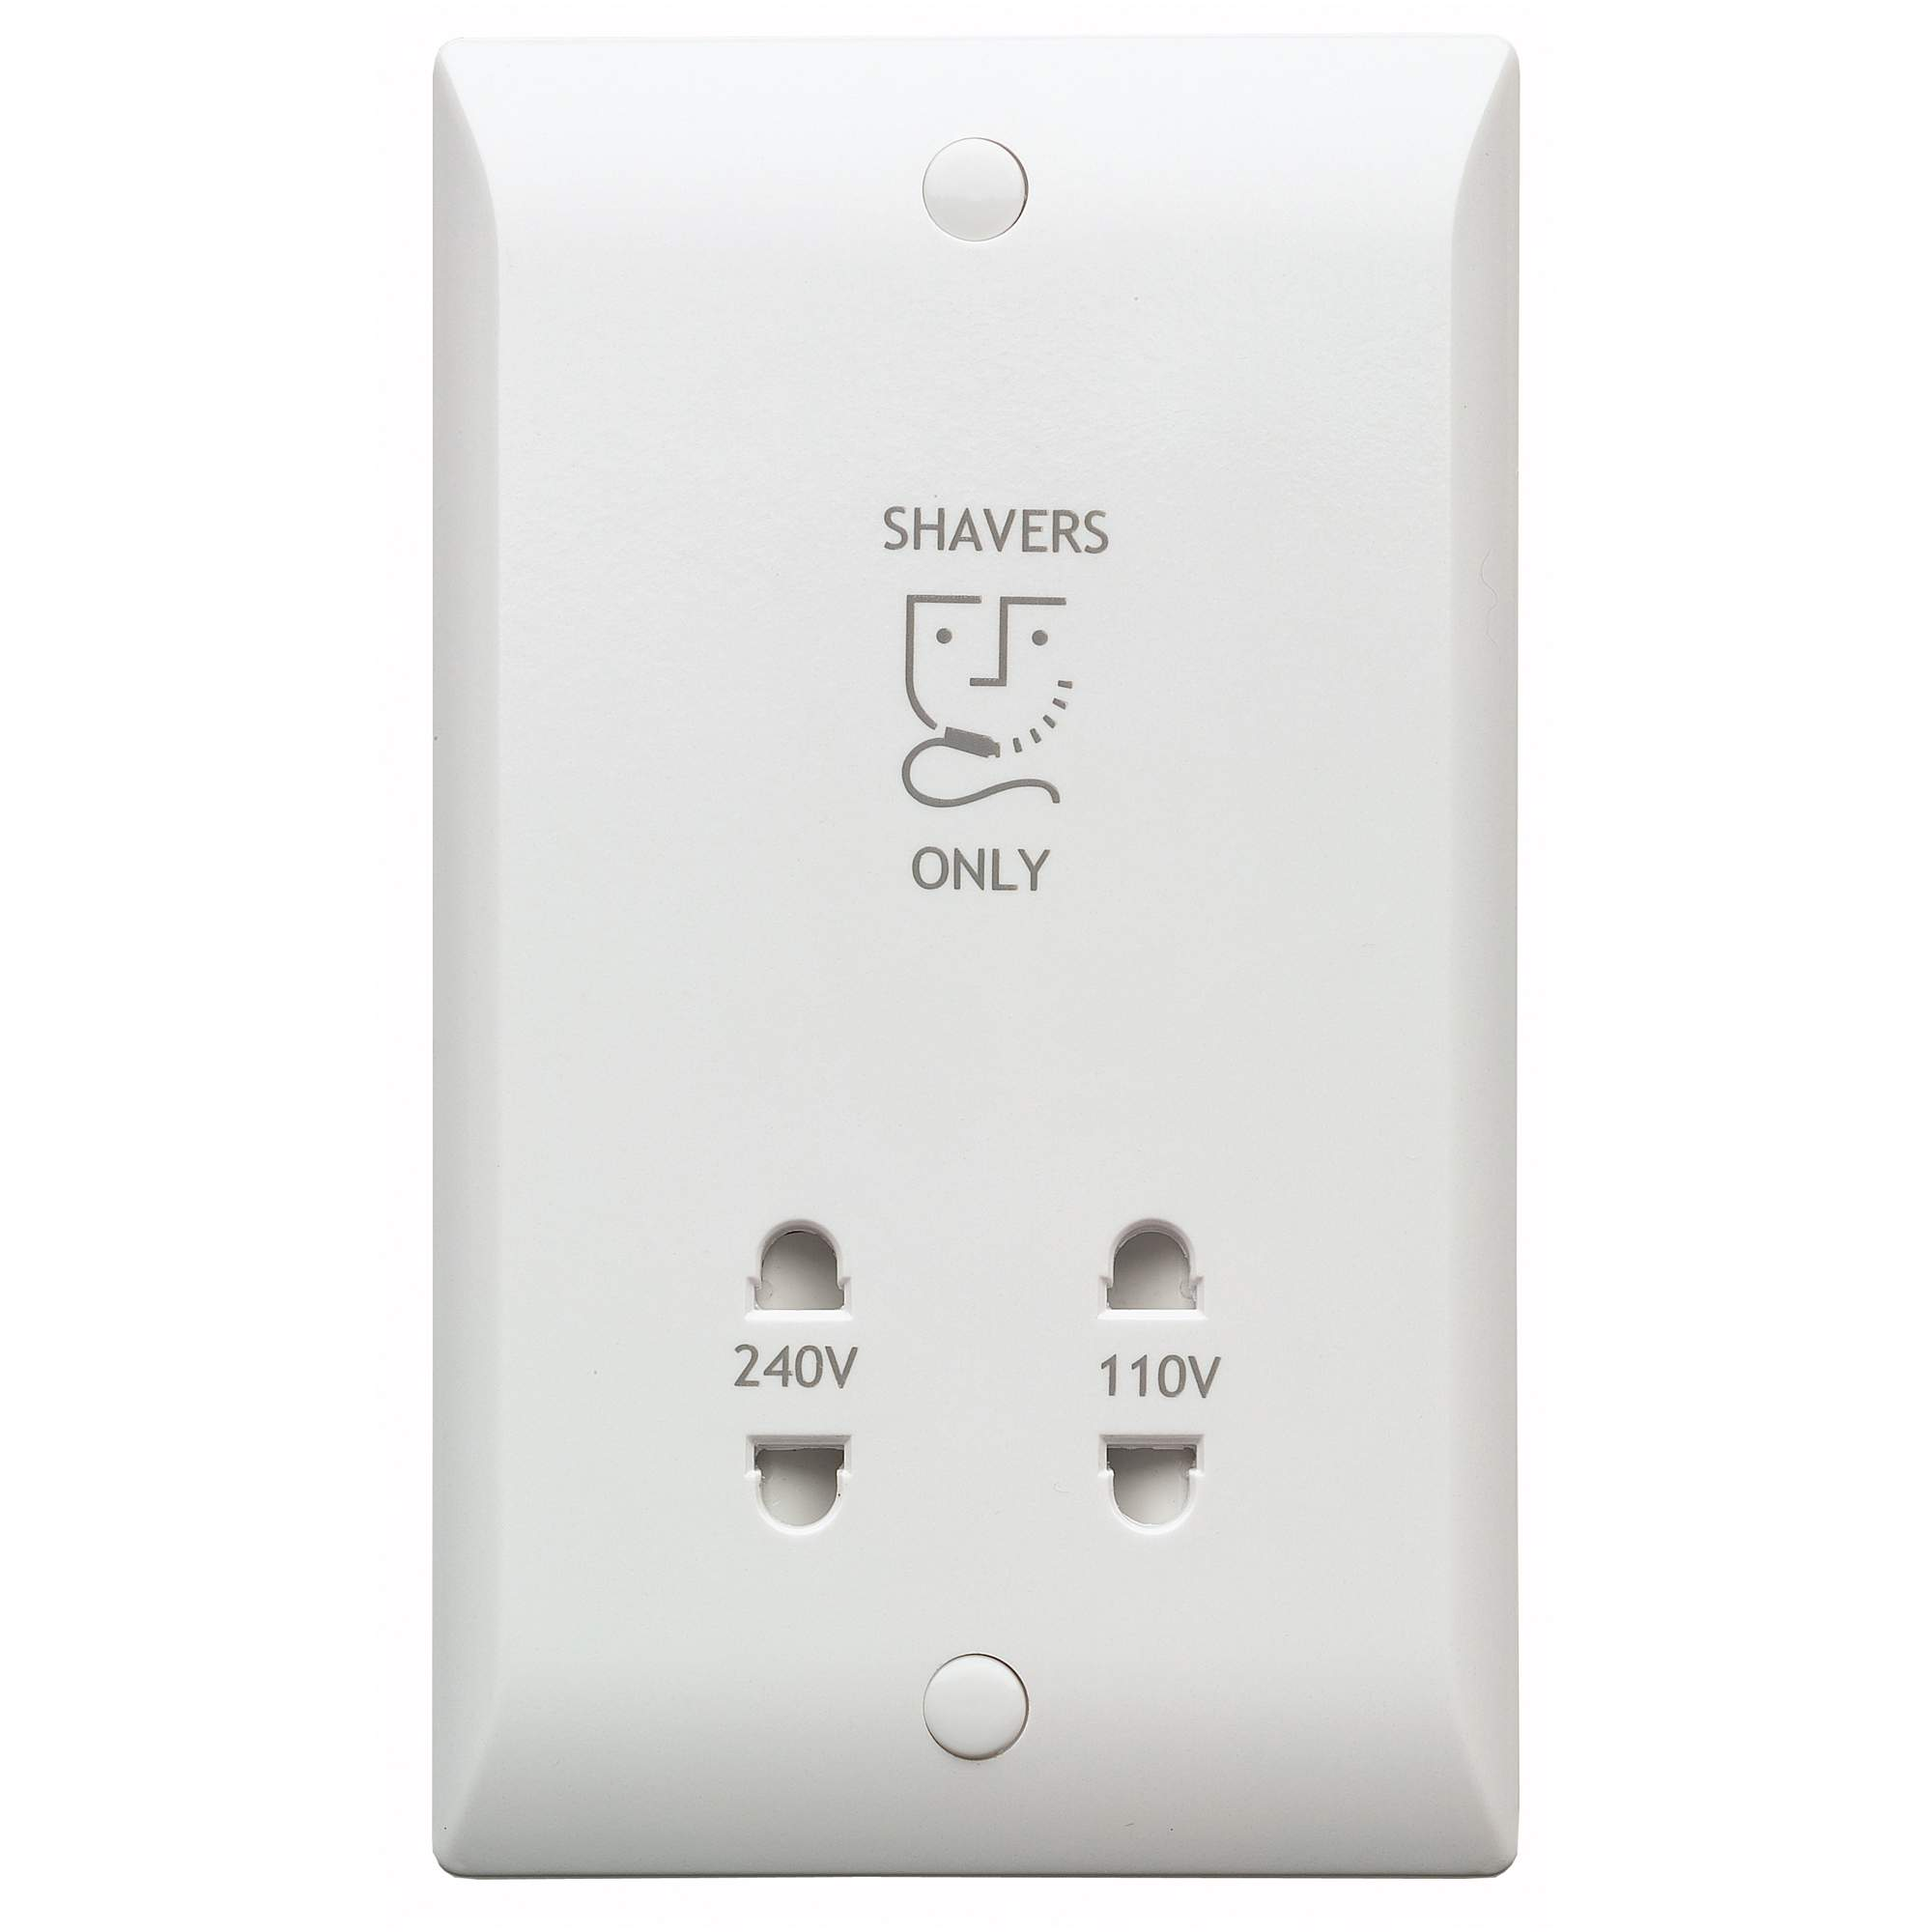 Float Valves besides 400mm Long White Wc Toilet Waste Water Straight Pan Connector Soil Pipe 110mm as well 1 further Home Appliances Dubai Electrical Socket 13  60038247477 furthermore 2539250 Electrical Symbol Icon Set. on standard size electrical outlet